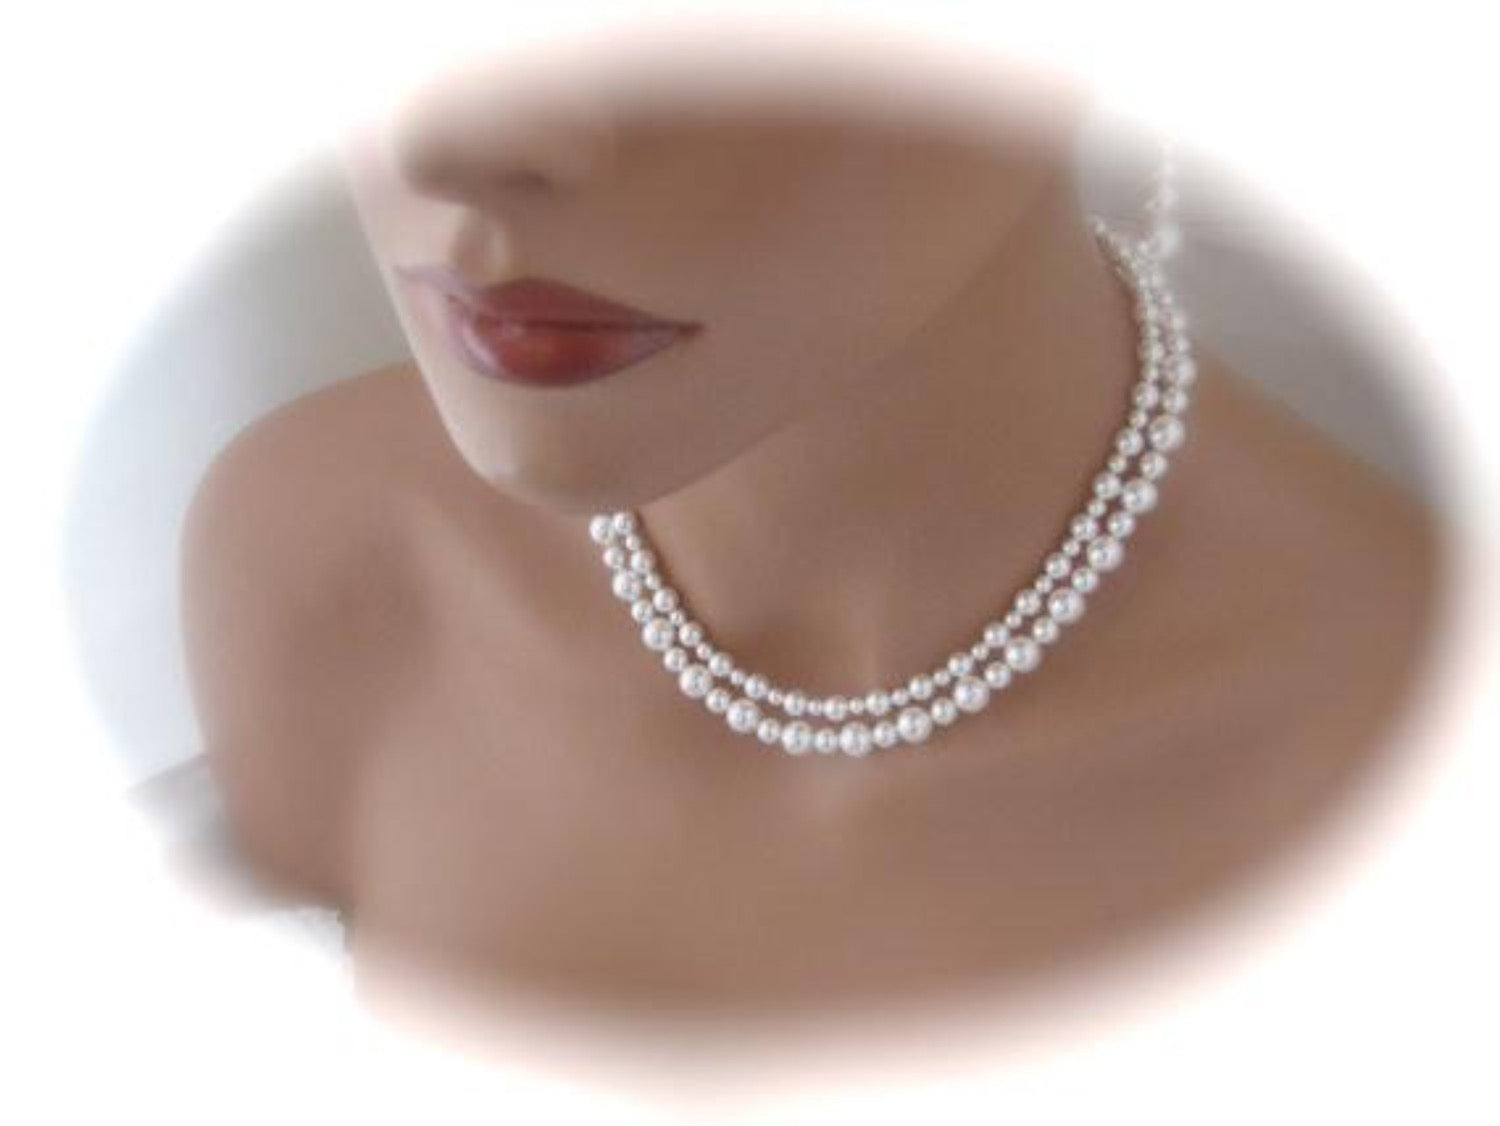 White Double Strand Pearl Necklace Bridal Earrings Wedding Jewelry - Clairesbridal - 4